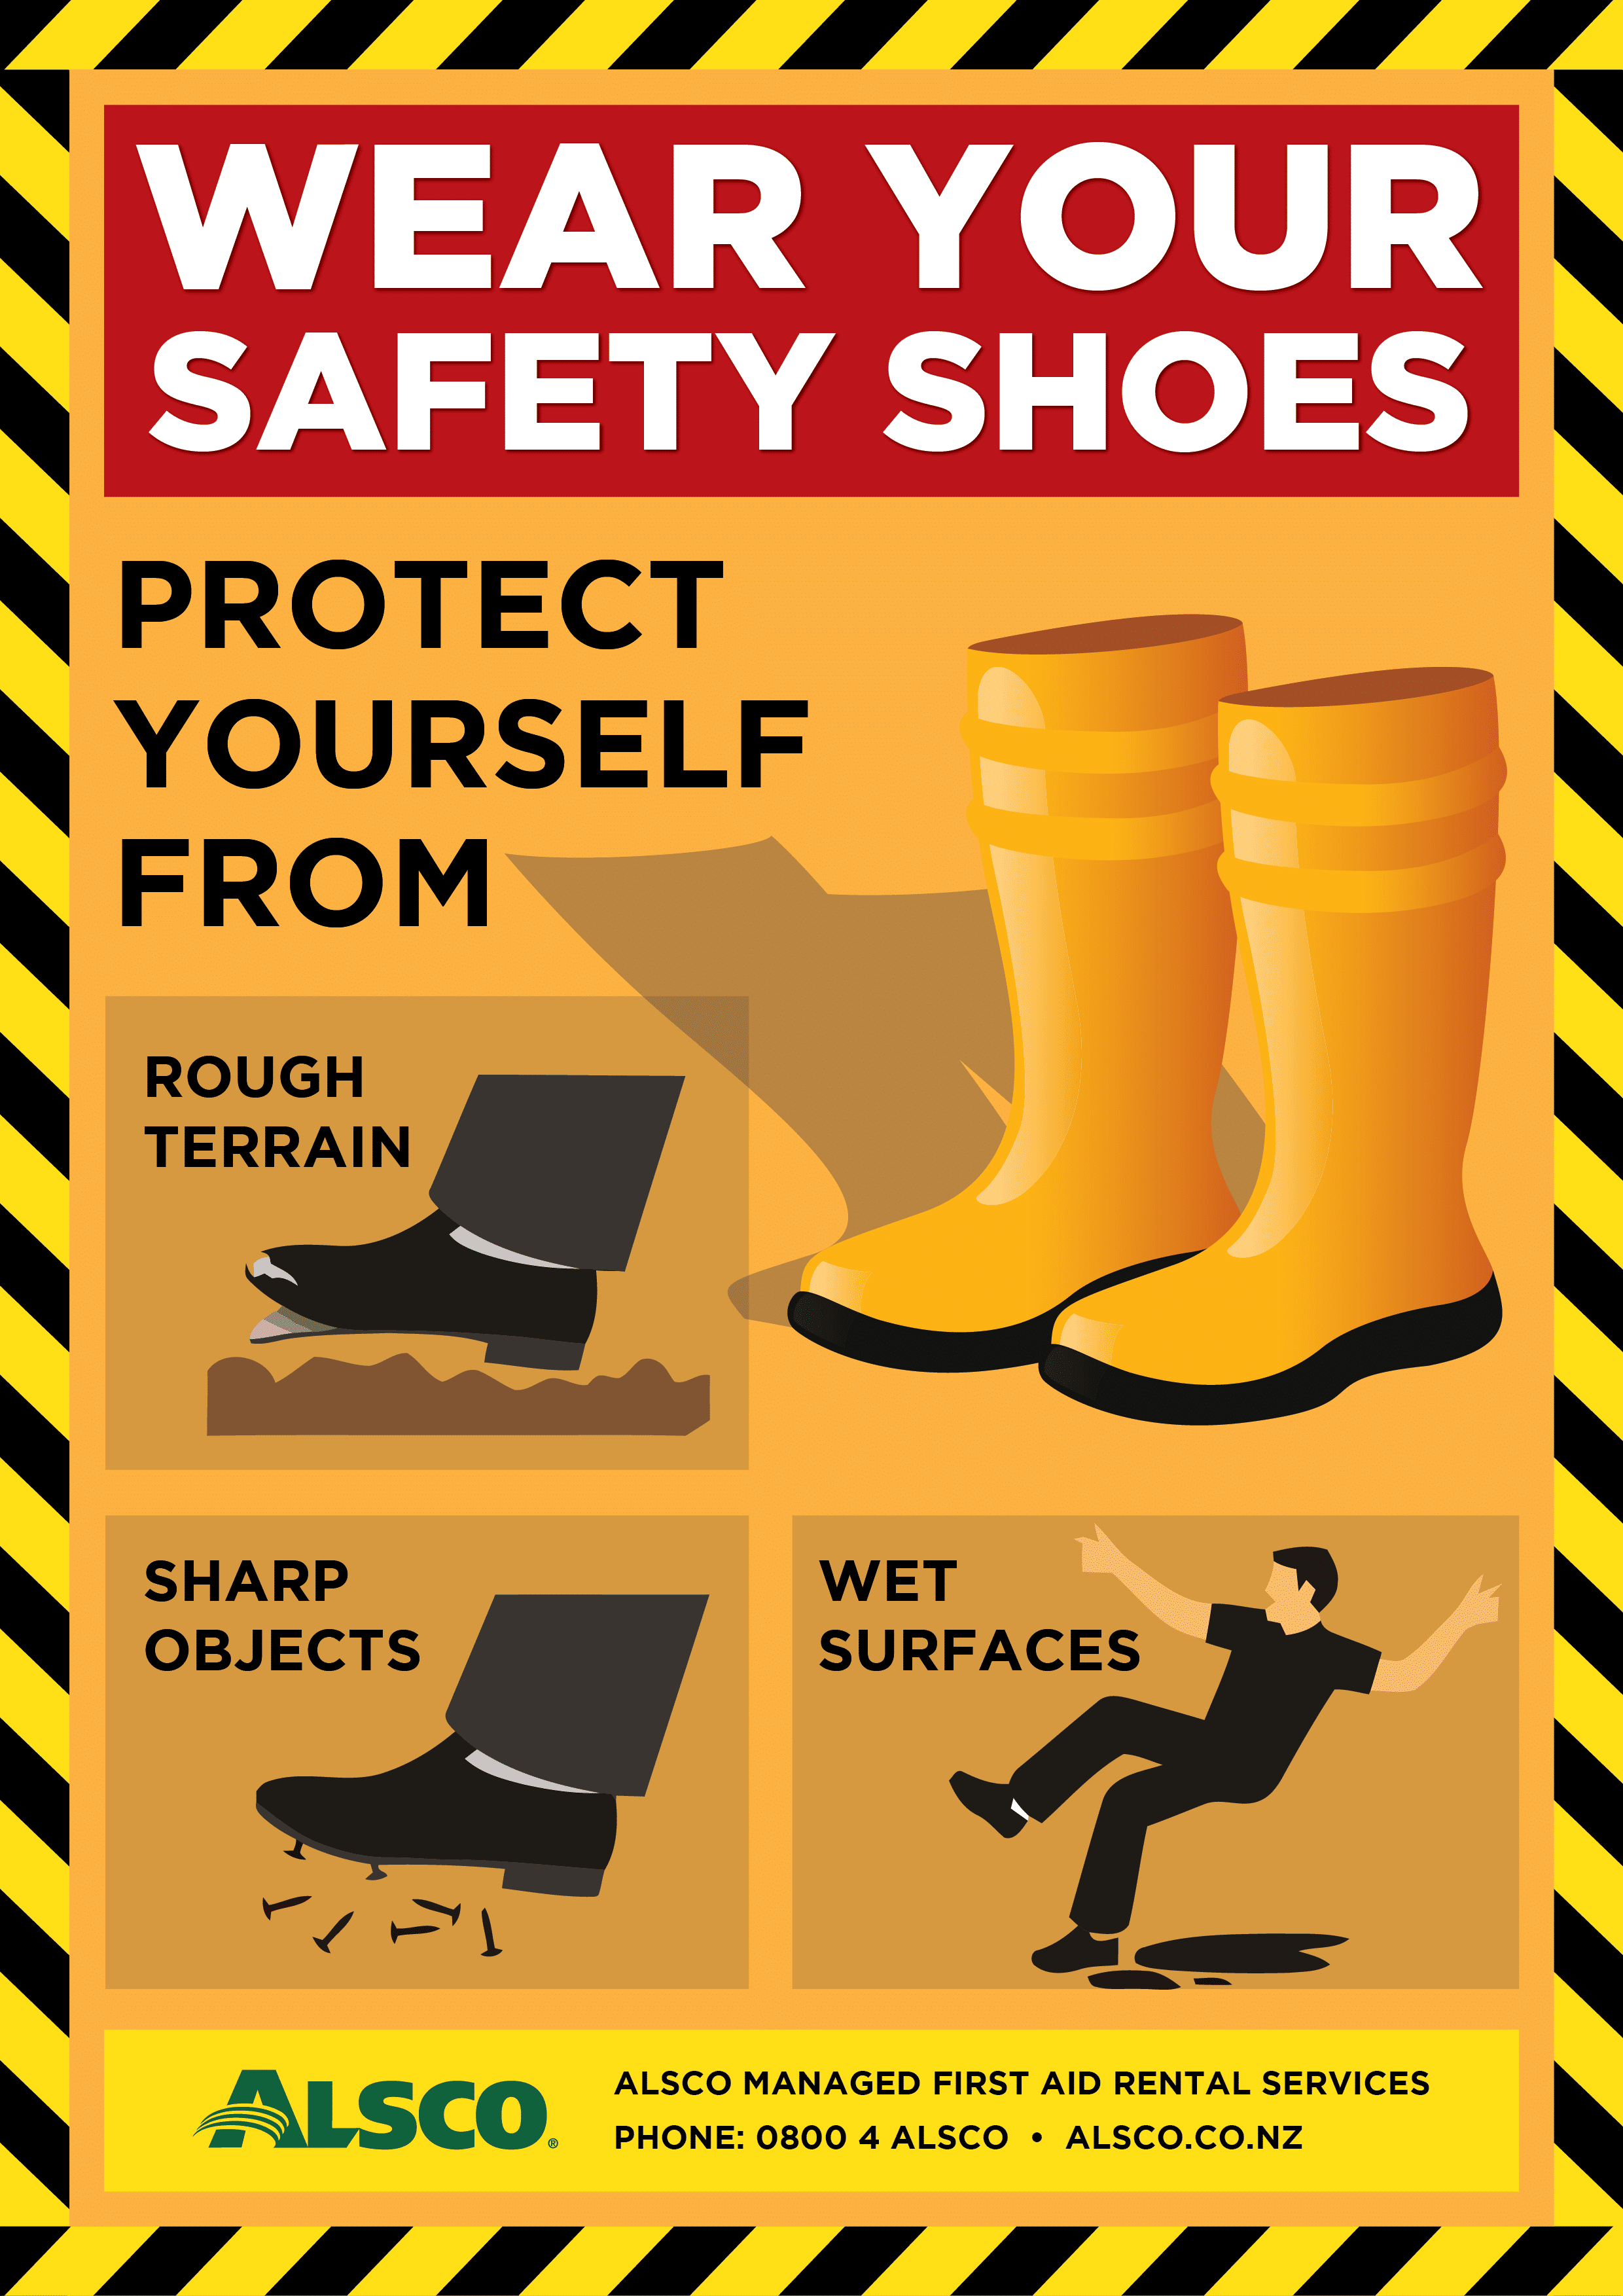 Pin by Bram Angga Lesmana on OSH | Workplace safety ...